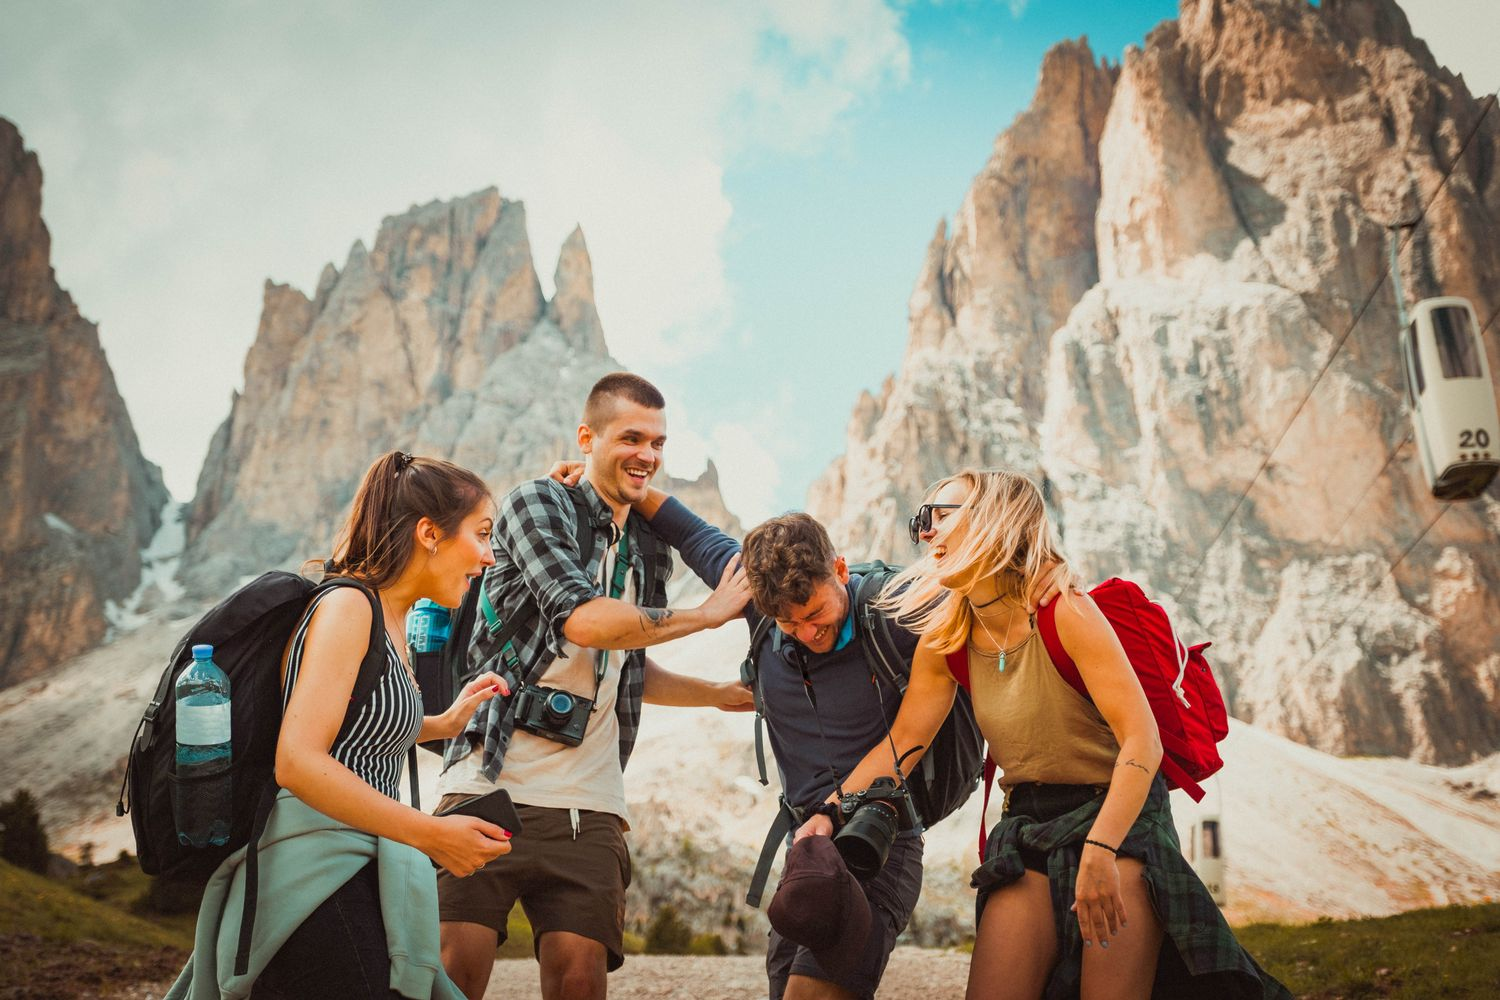 Group of backpacker friends on travel laughing